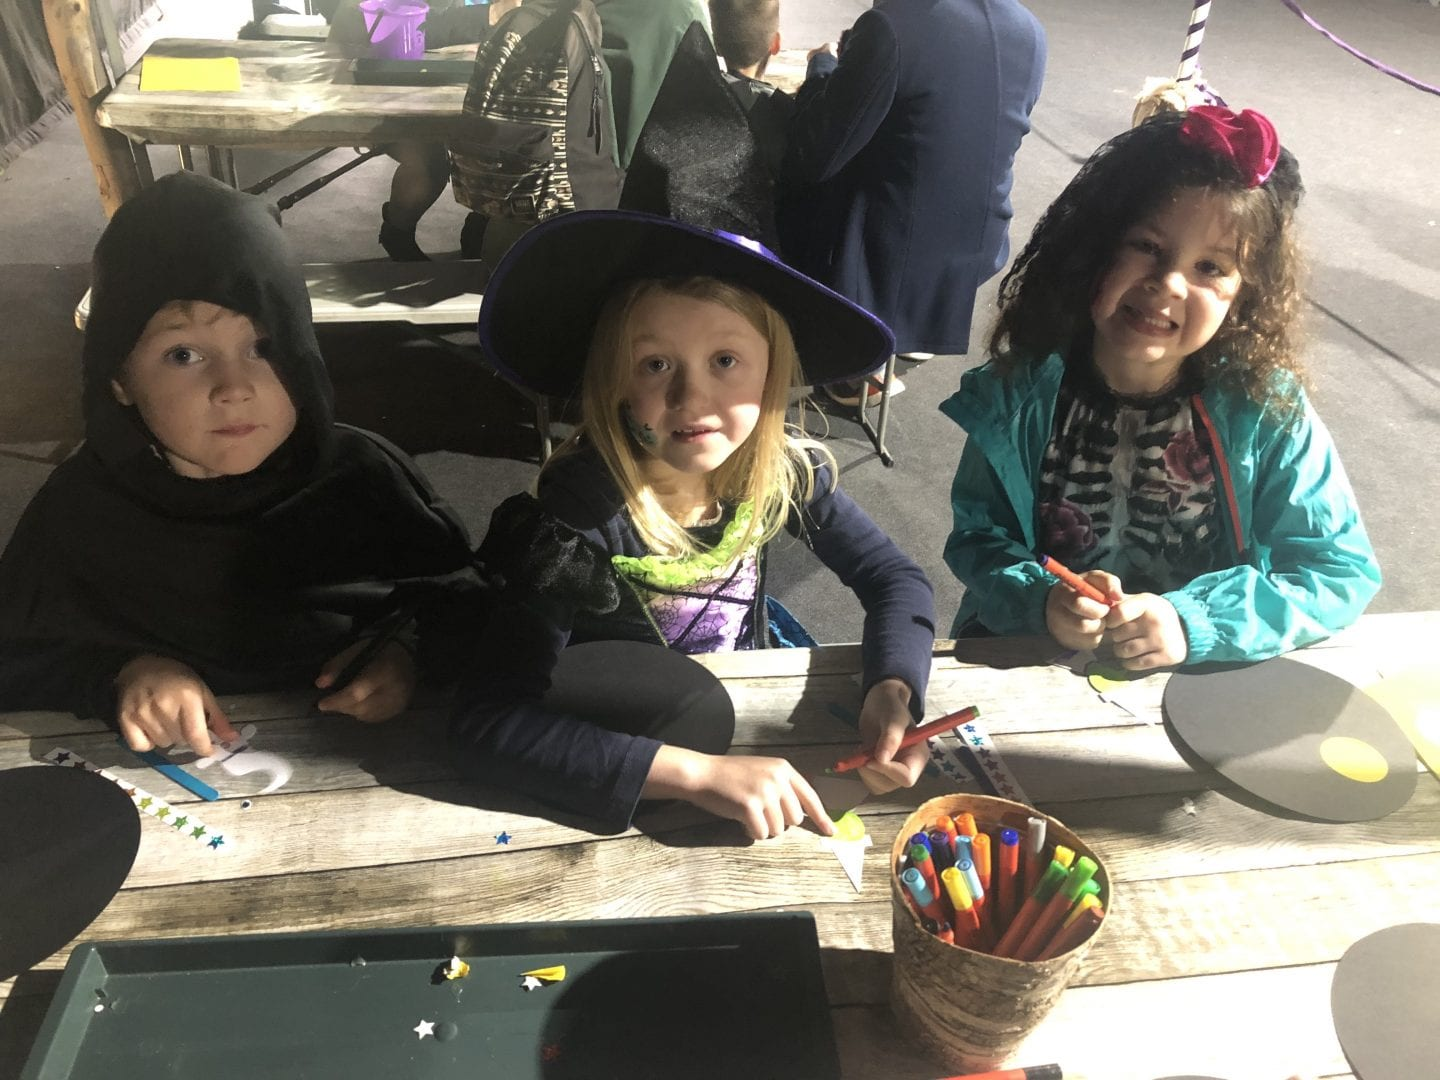 3 children sitting at a table doing some Halloween crafts